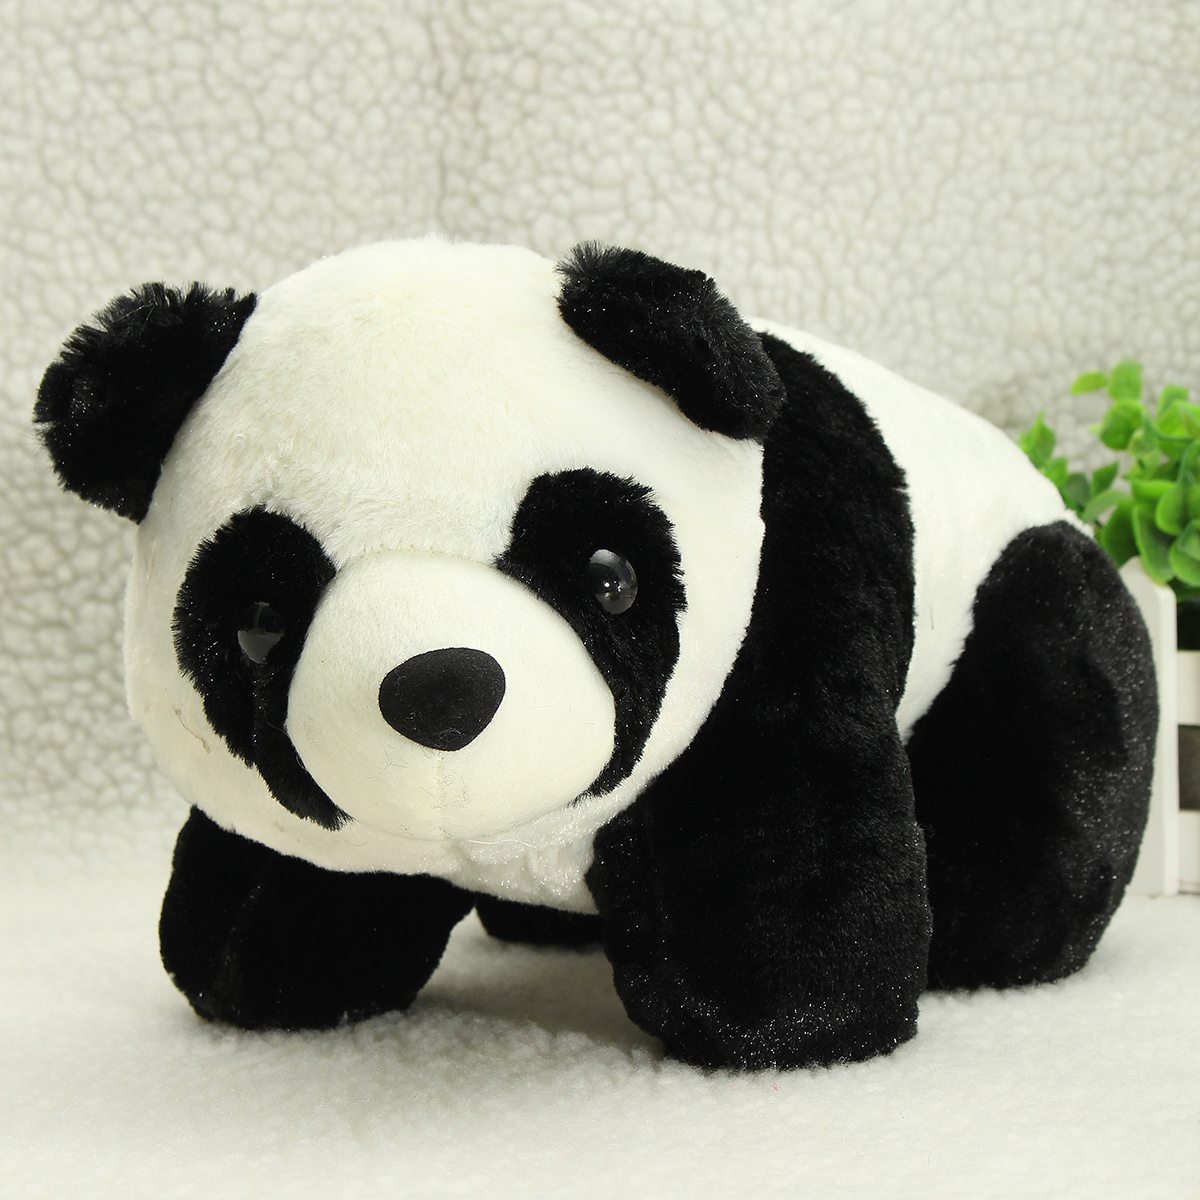 30cm 12'' Soft Plush Stuffed Panda PP Cotton Climbing Chinese Panda Doll Toy Gift - Photo: 1